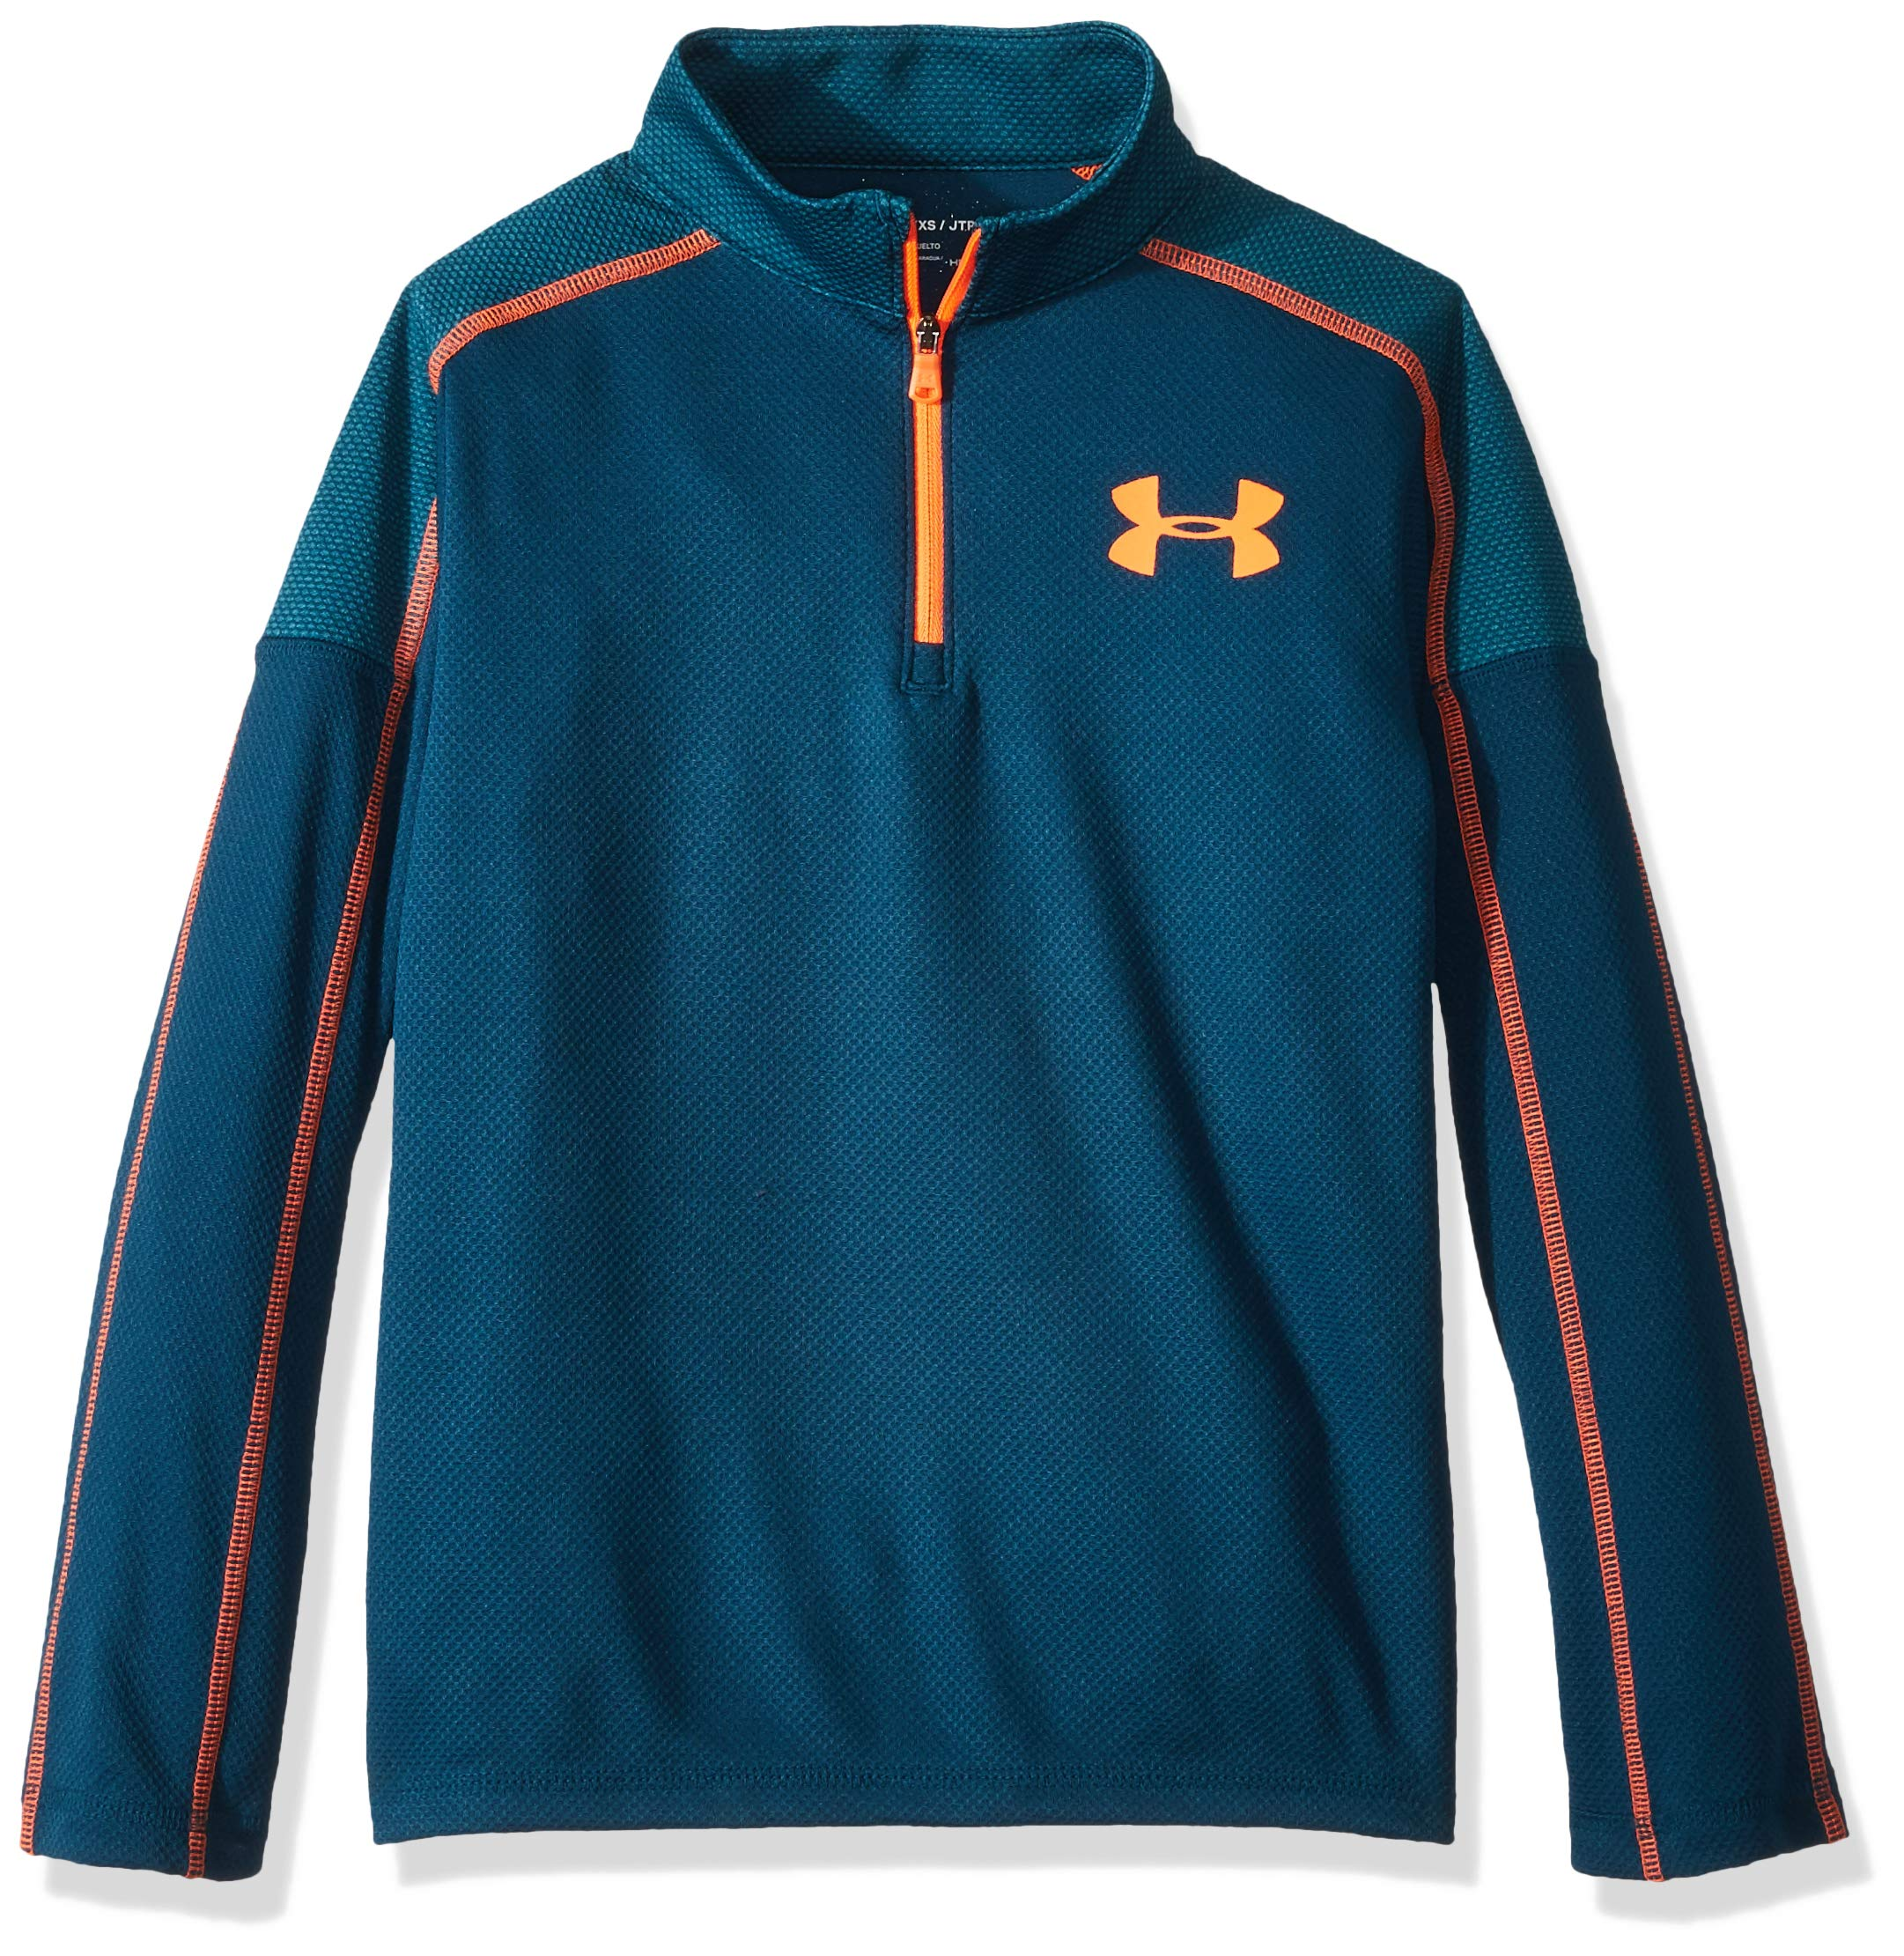 Under Armour Boys Tech 1/2 Zip, Techno Teal (489)/Magma Orange, Youth Small by Under Armour